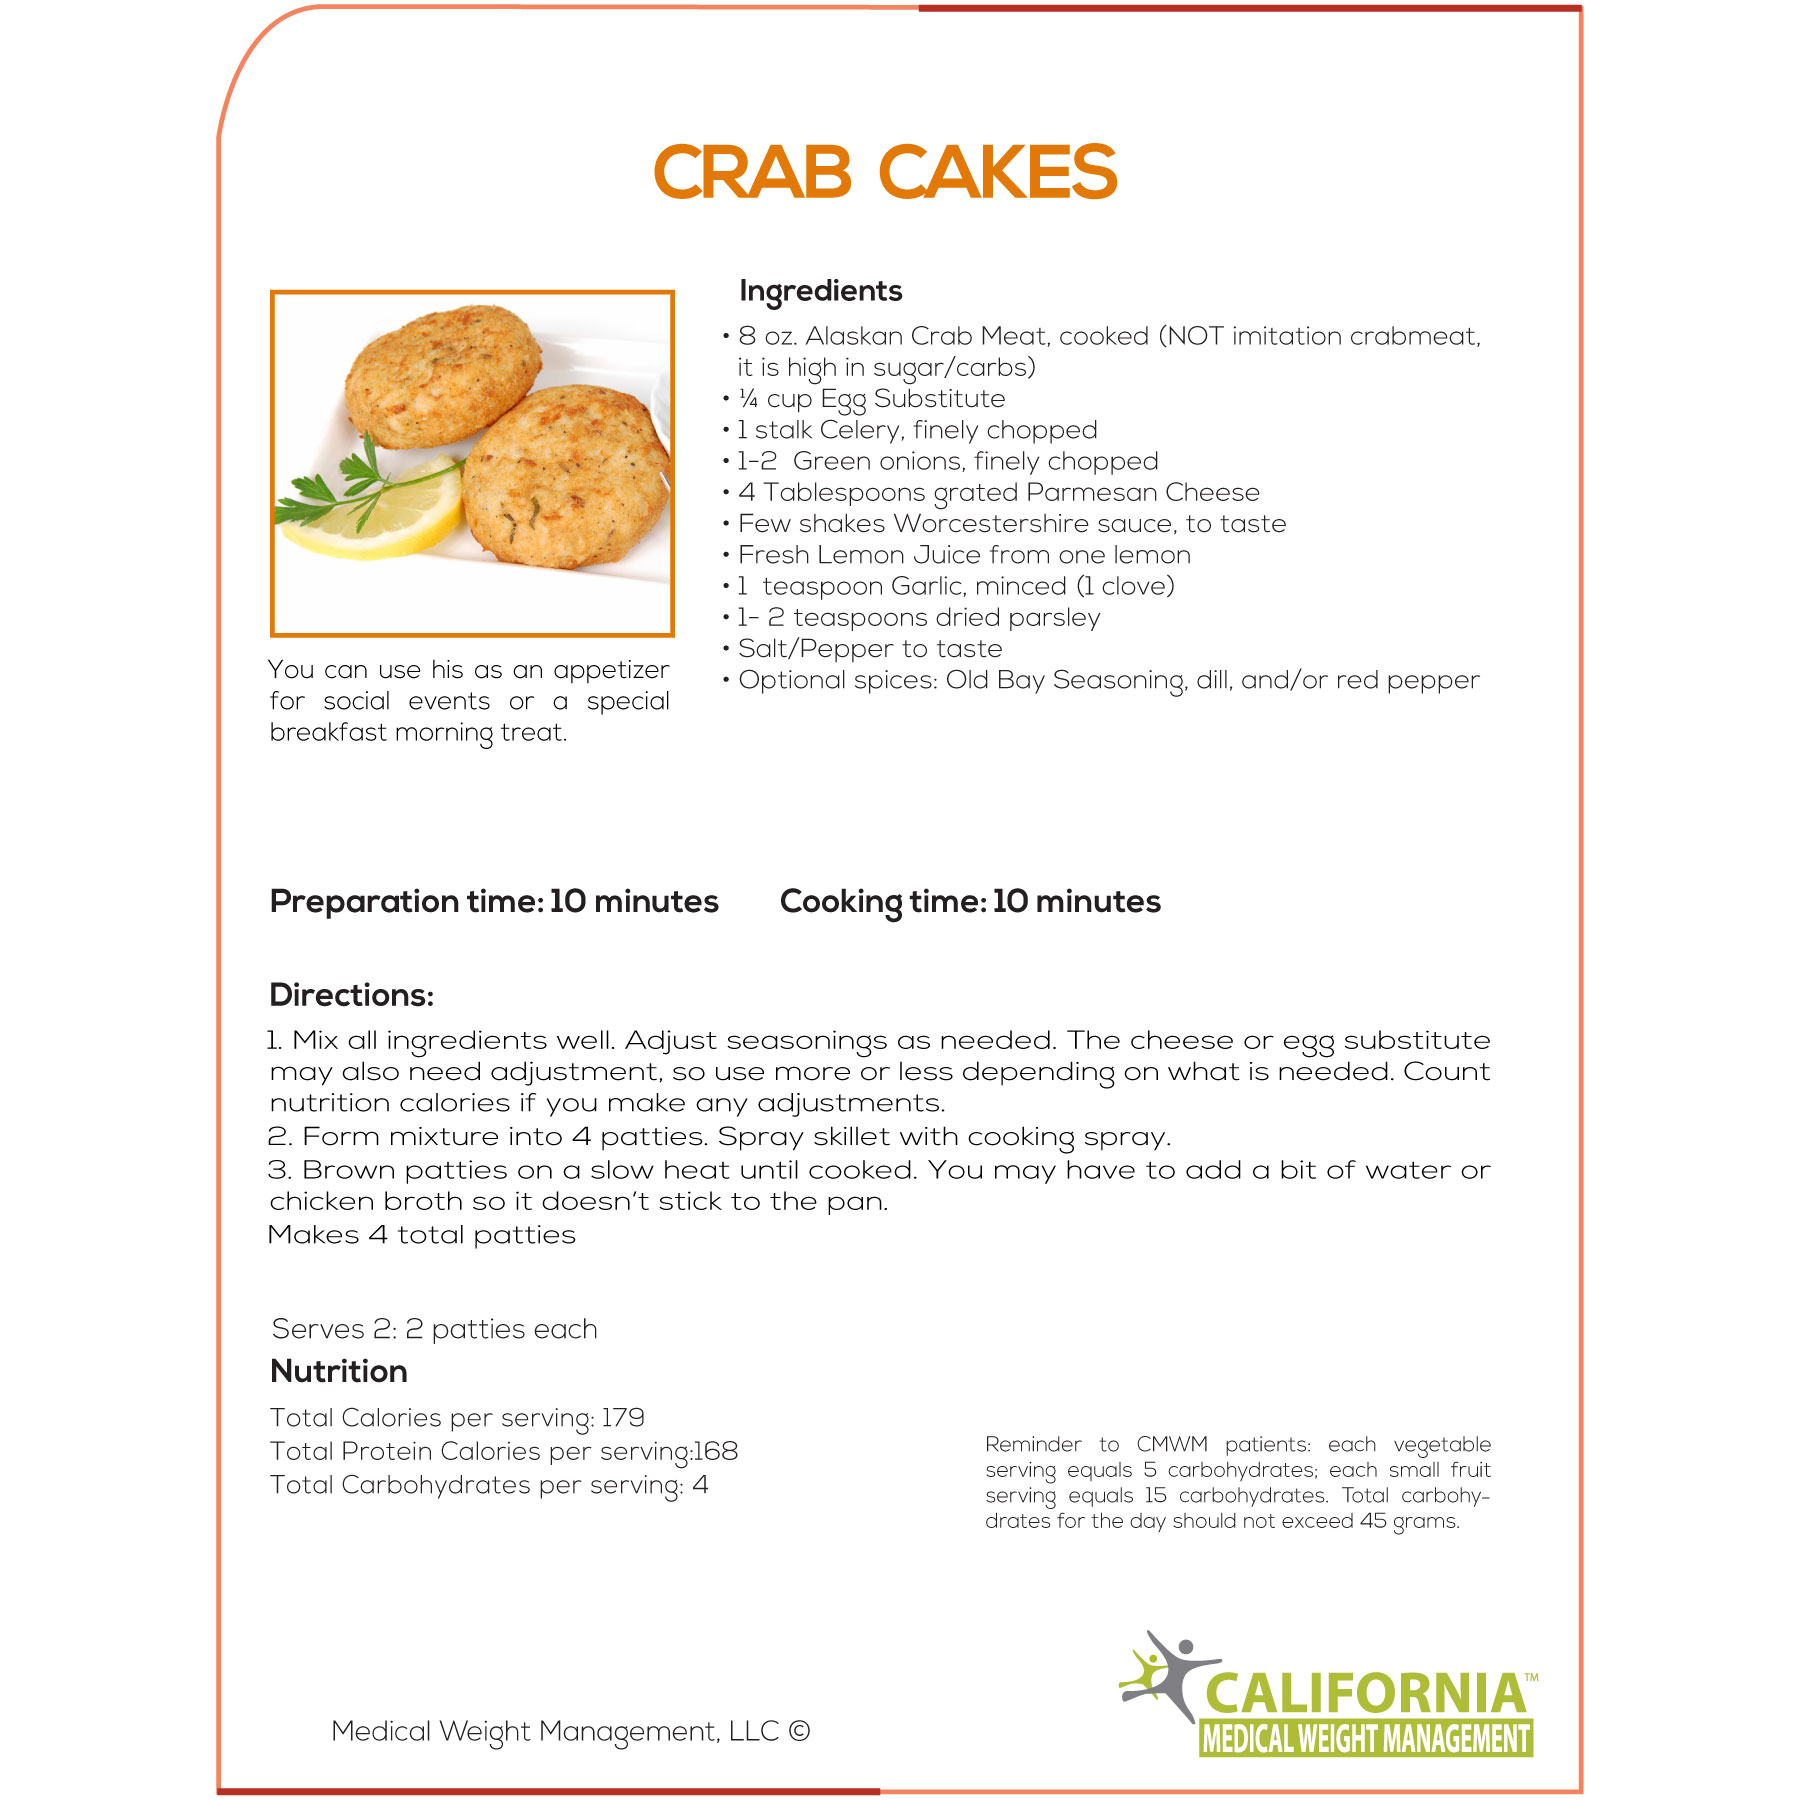 Nutrition In A Crab Cake